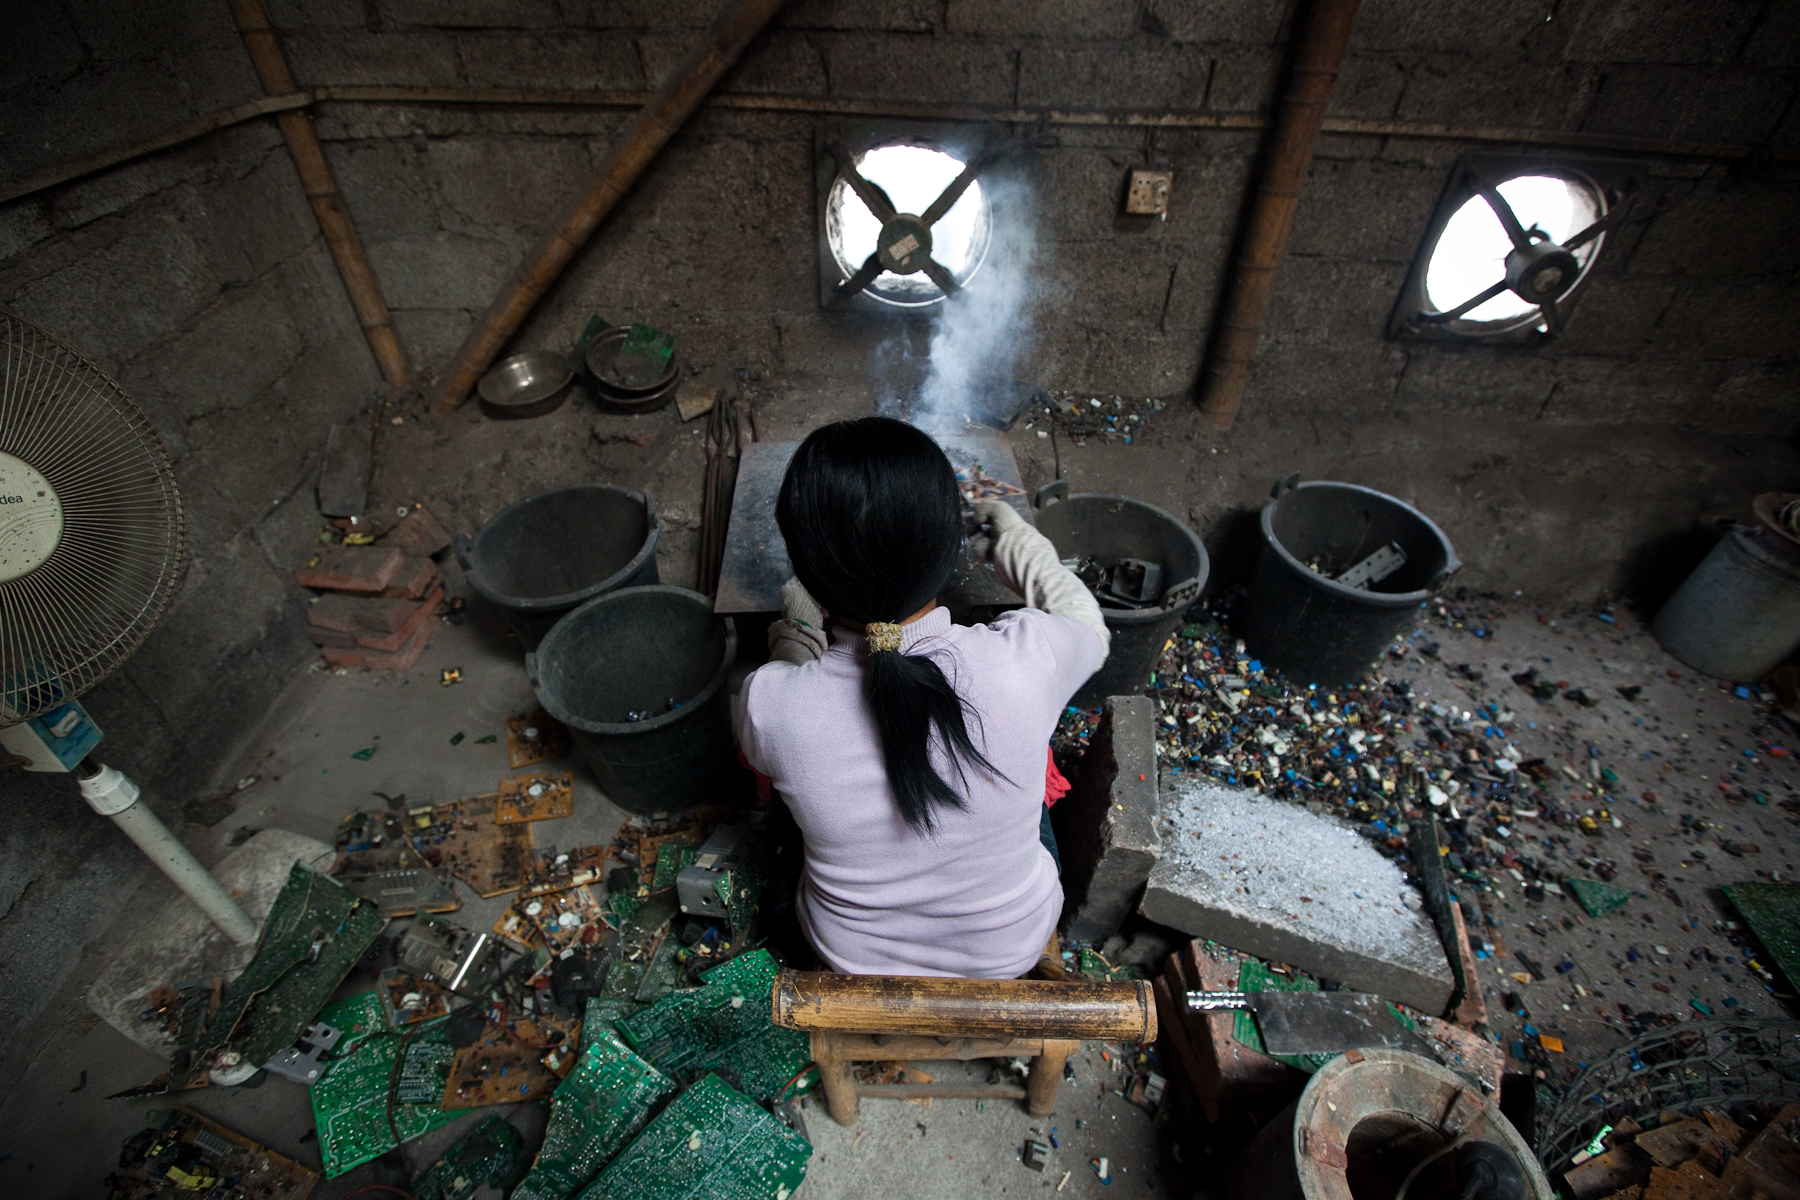 Informal Recycler Melting E-Waste - Collective Responsibility